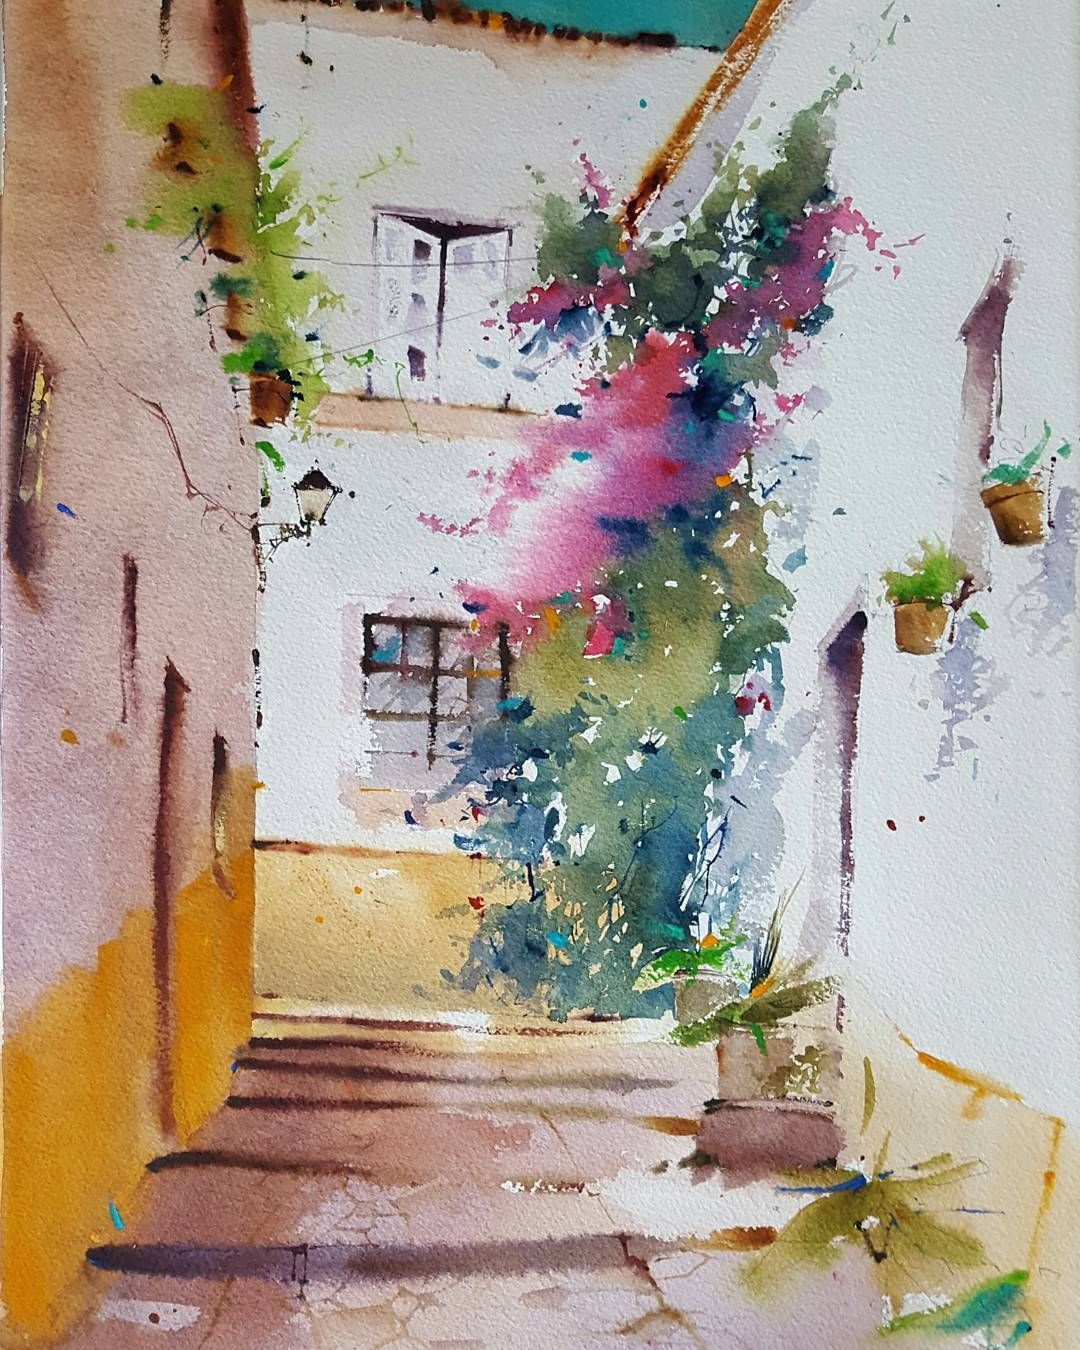 Calle De Portugal Acuarela S Papel 55x36 Cm Watercolor Aquarelle